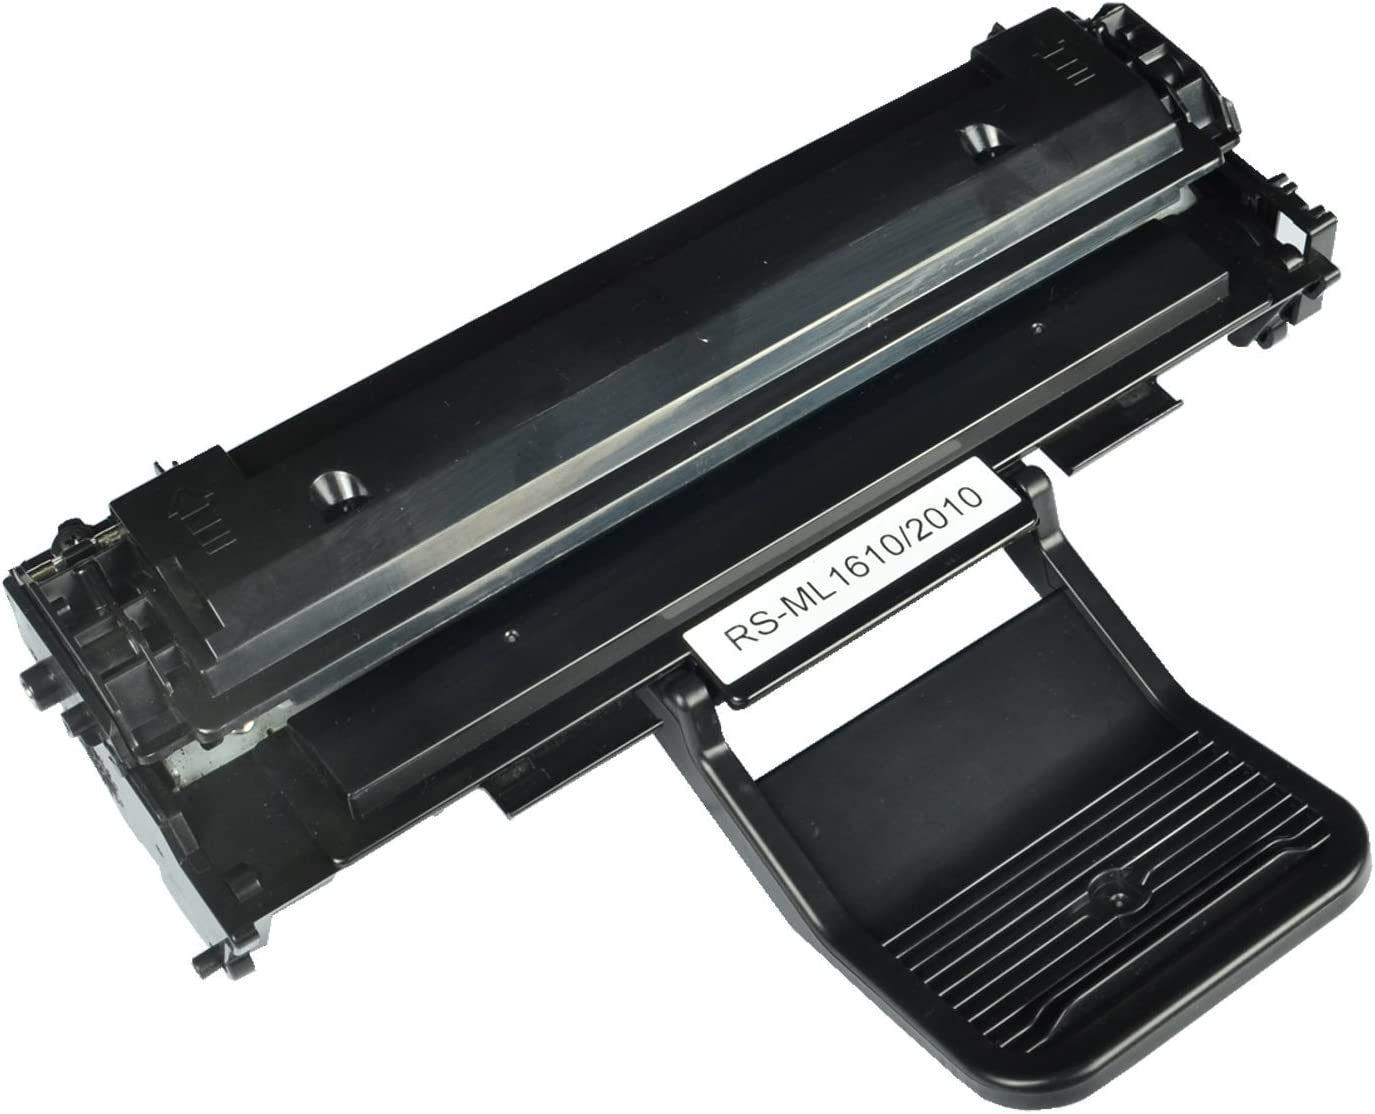 SuperInk Compatible Toner Cartridge Replacement for Samsung 1610 ML-1610 ML-1610D3 Black, 2-Pack